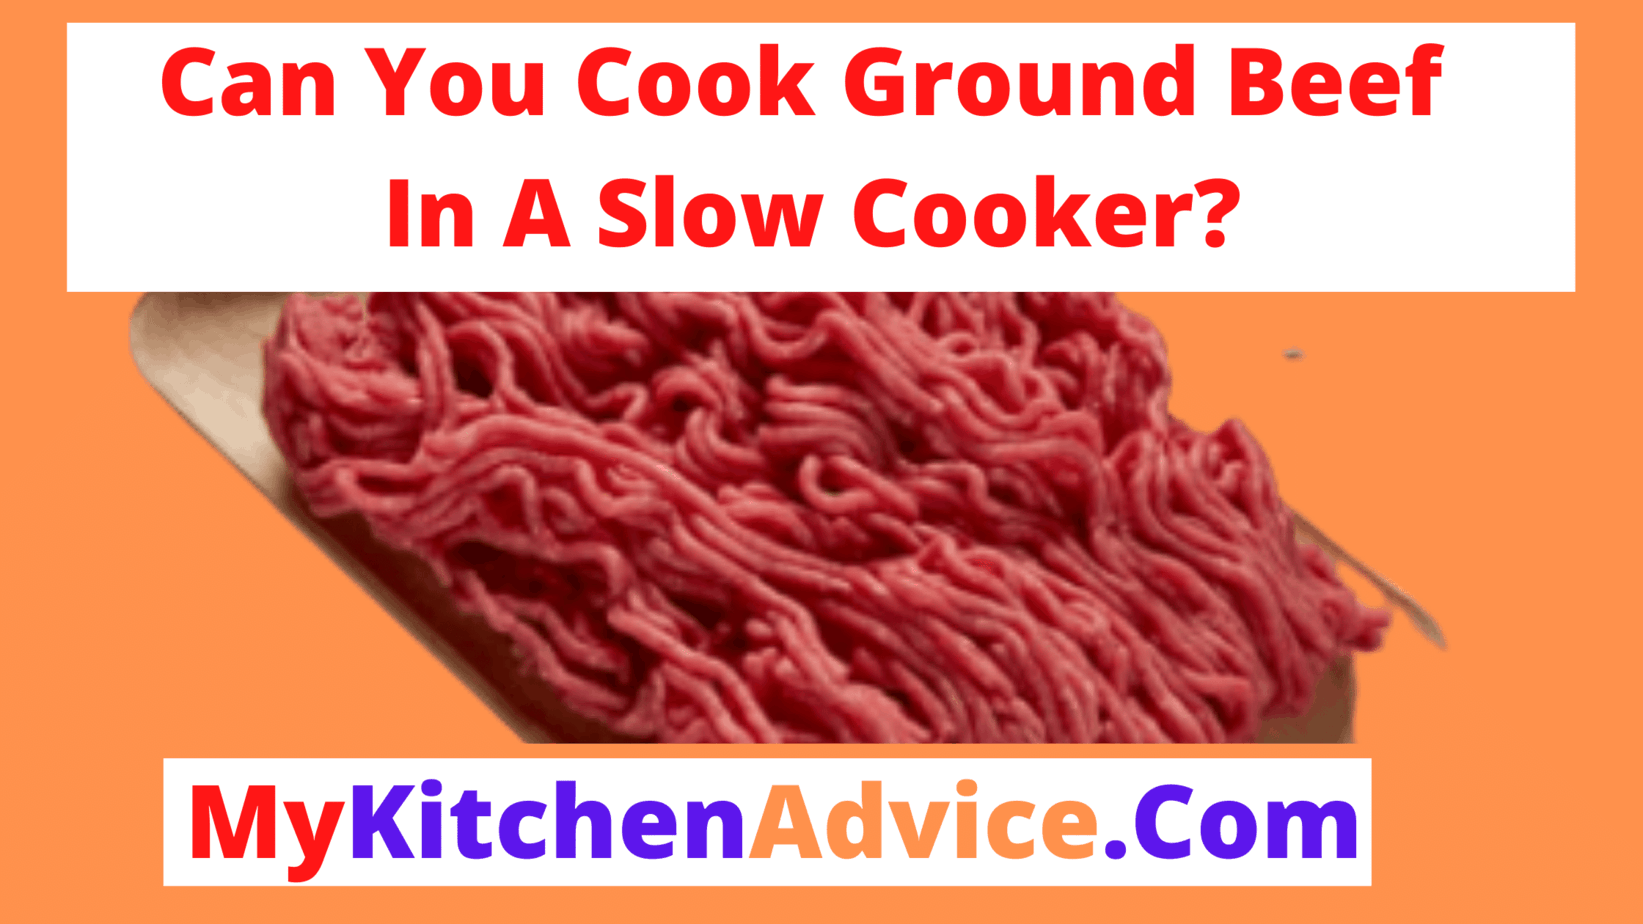 can you cook ground beef in a slow cooker